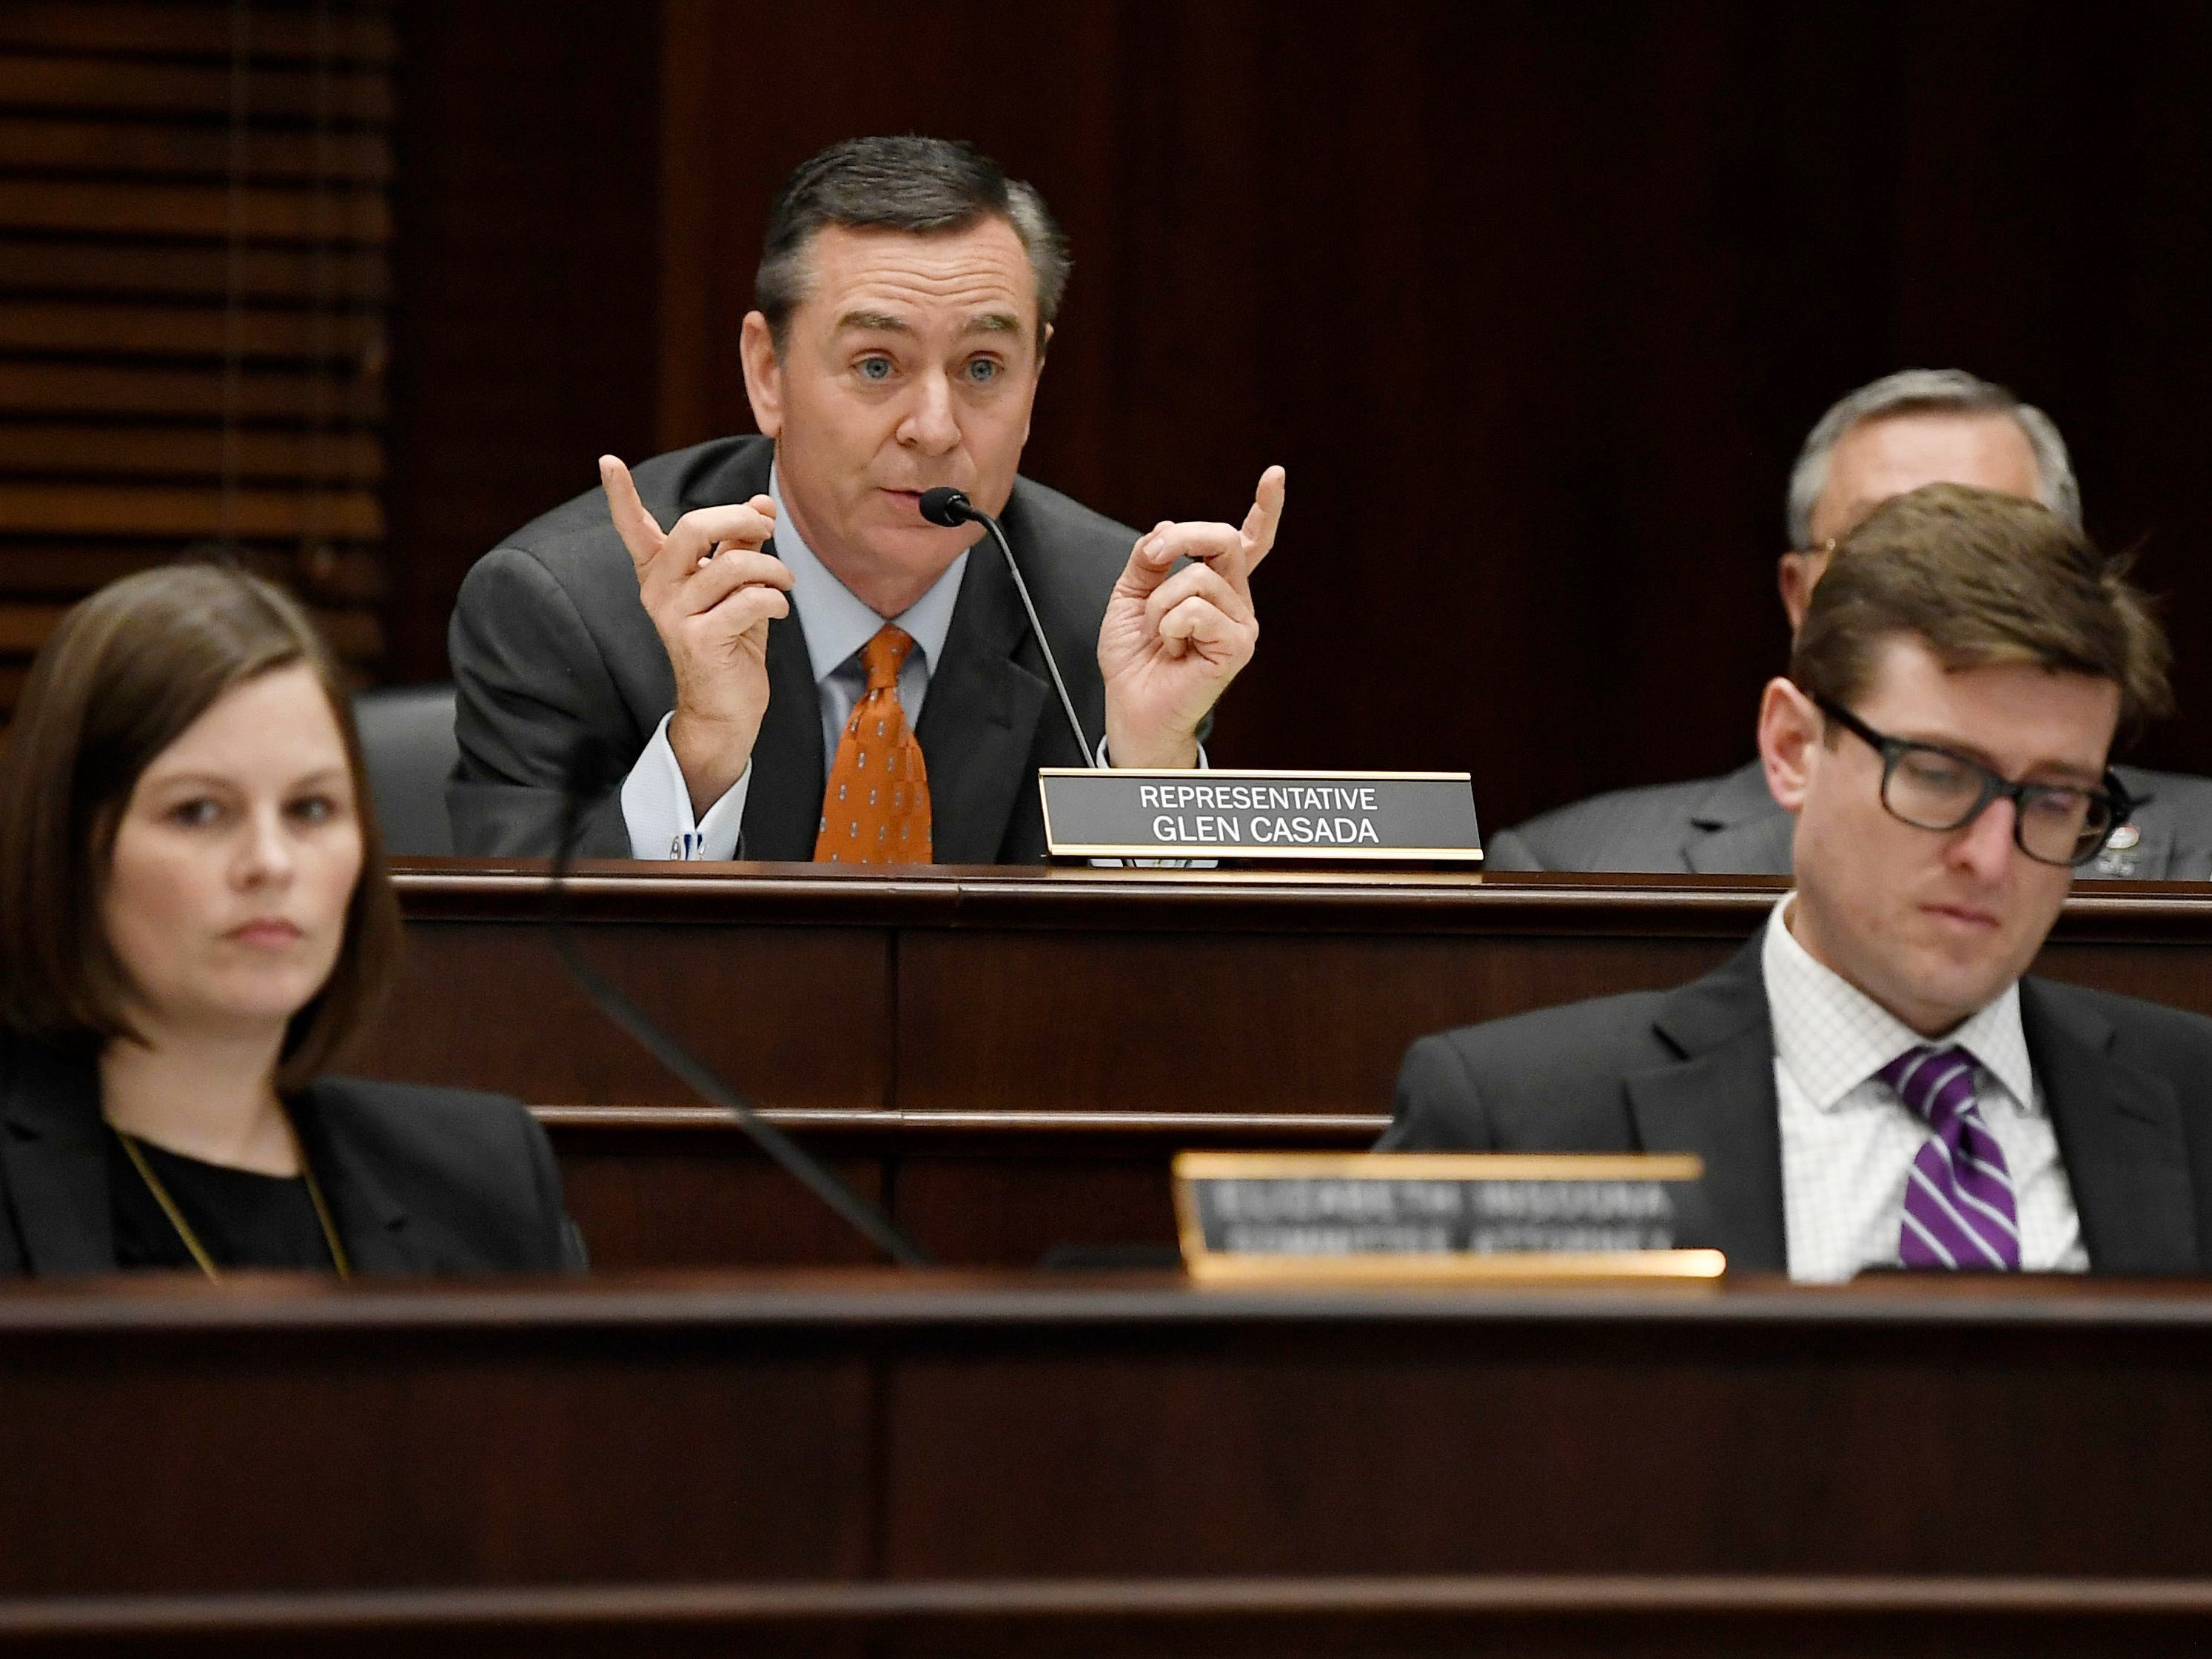 Rep. Glen Casada, top, speaks about a bill that would allow school employees to carry guns that is under consideration before the House Civil Justice Subcommittee on Feb. 28 2018, at the Cordell Hull Building.